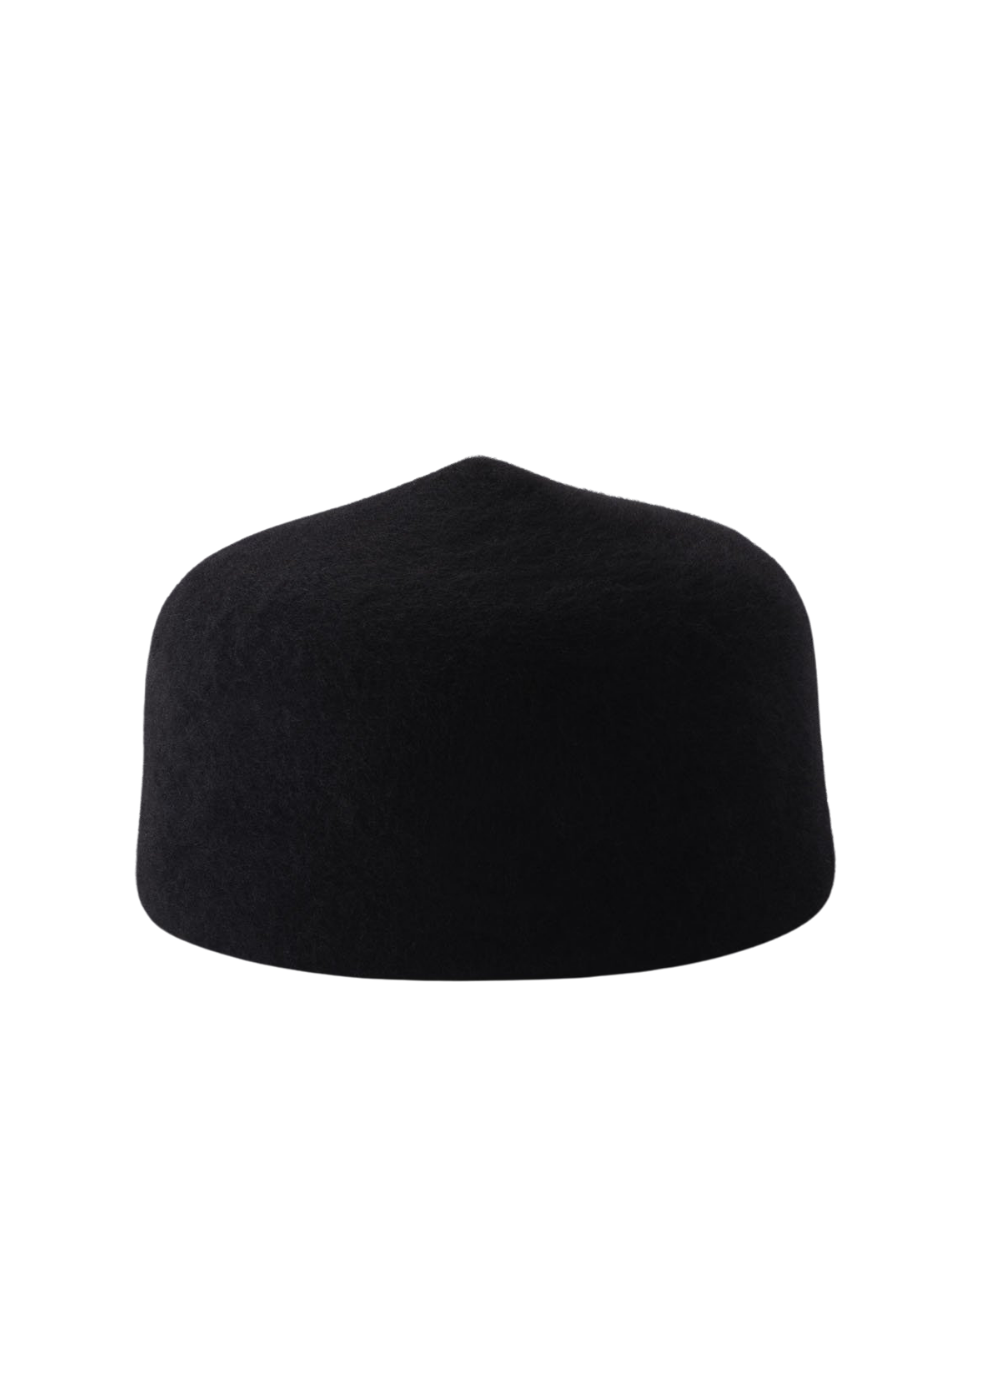 Simon and Mary Black Classic Fez Hat